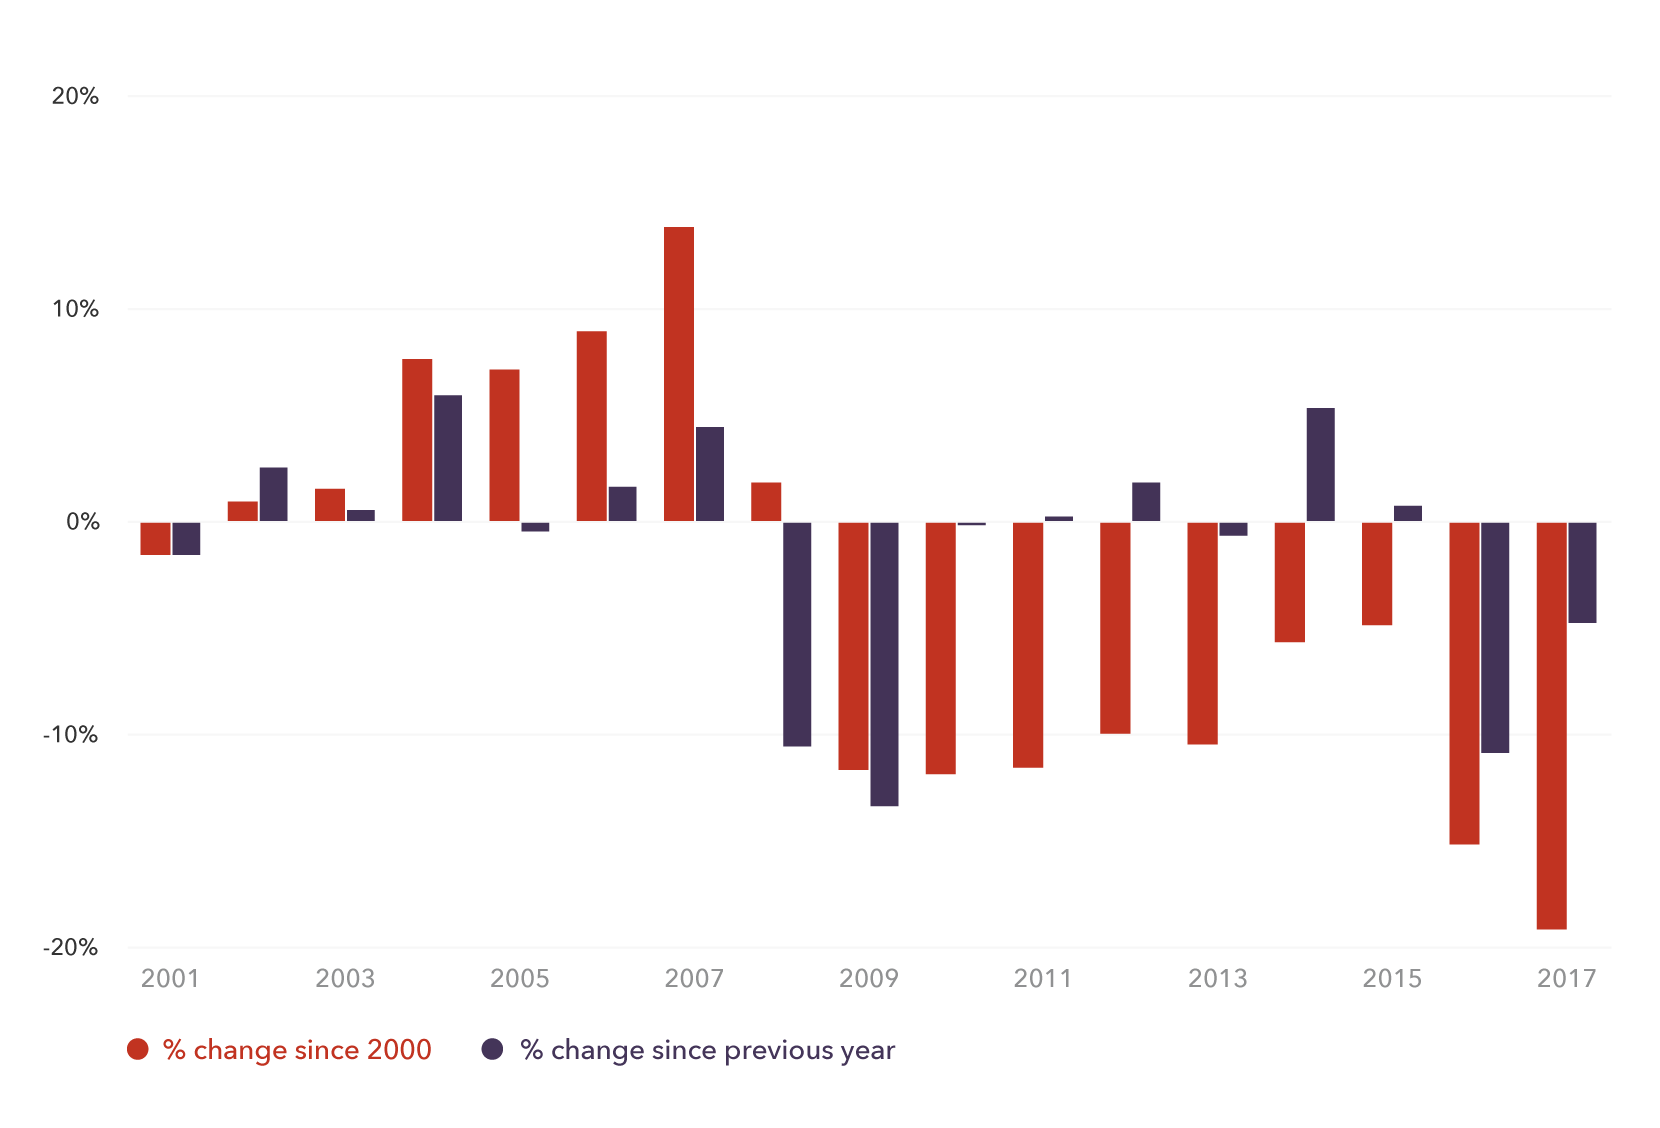 Change in value of British pound (GBP) since 2000